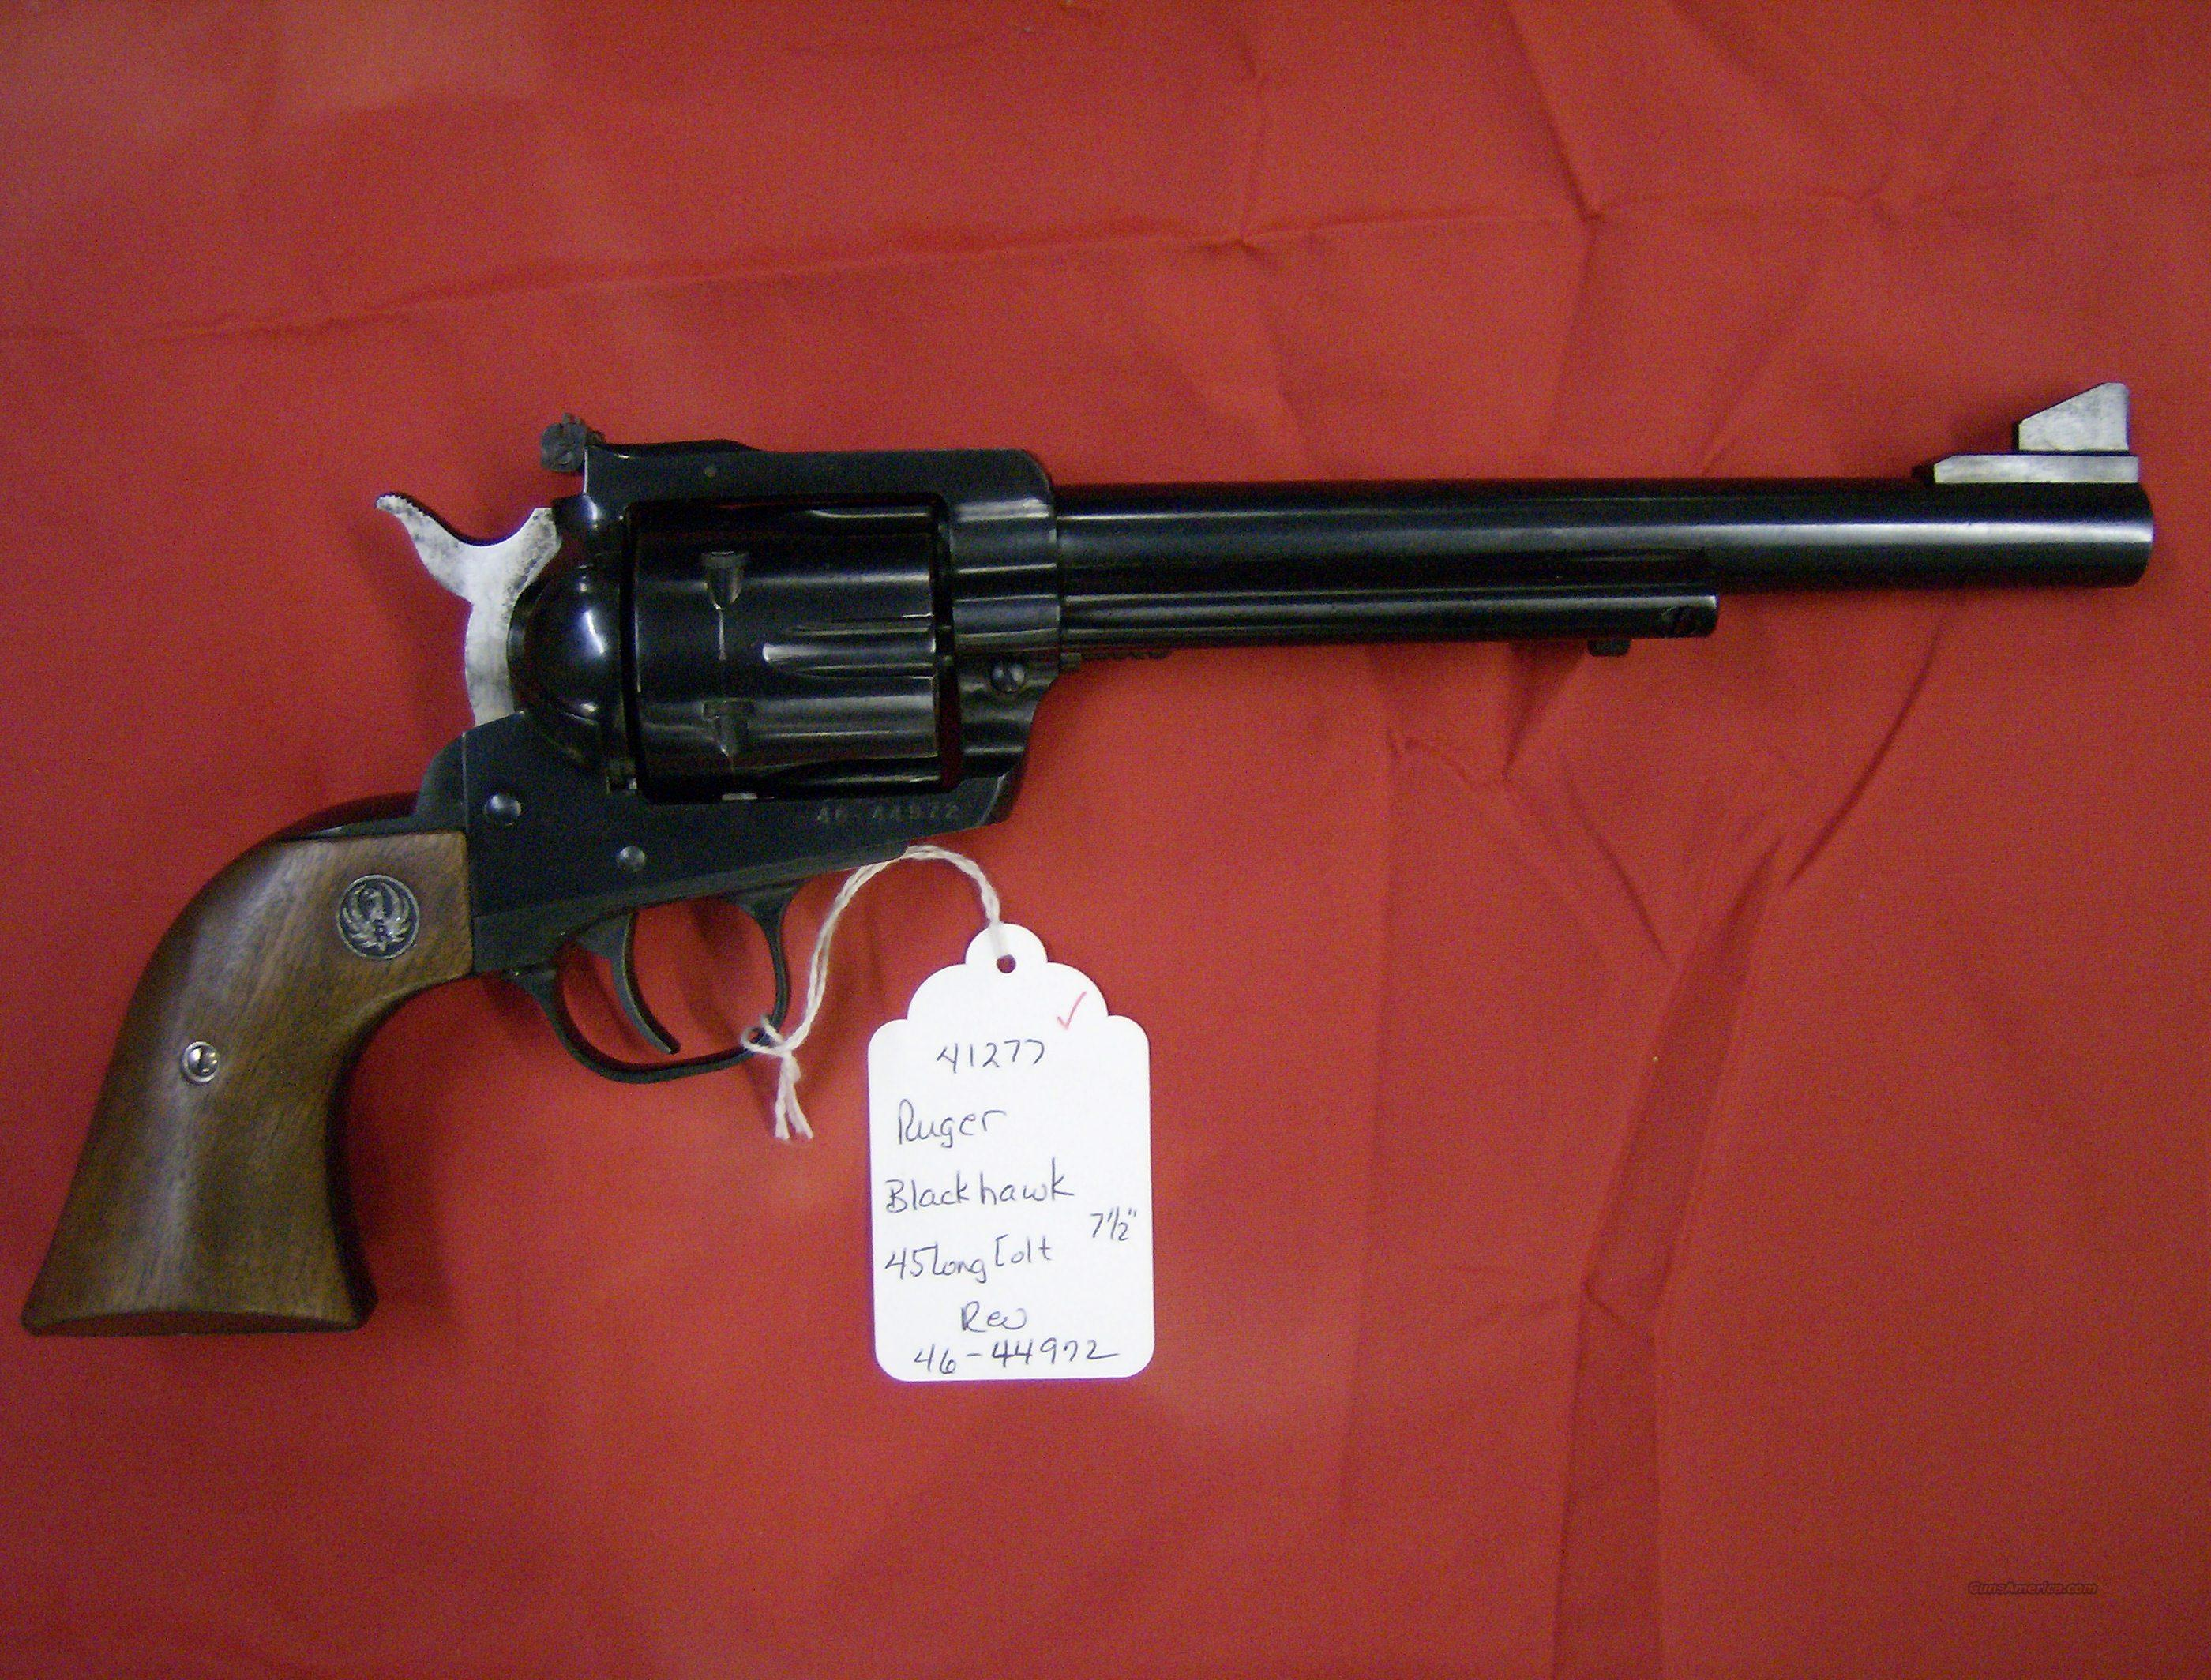 "RUGER BLACKHAWK 45 LC 7 1/2"" BLUE  Guns > Pistols > Ruger Single Action Revolvers > Blackhawk Type"